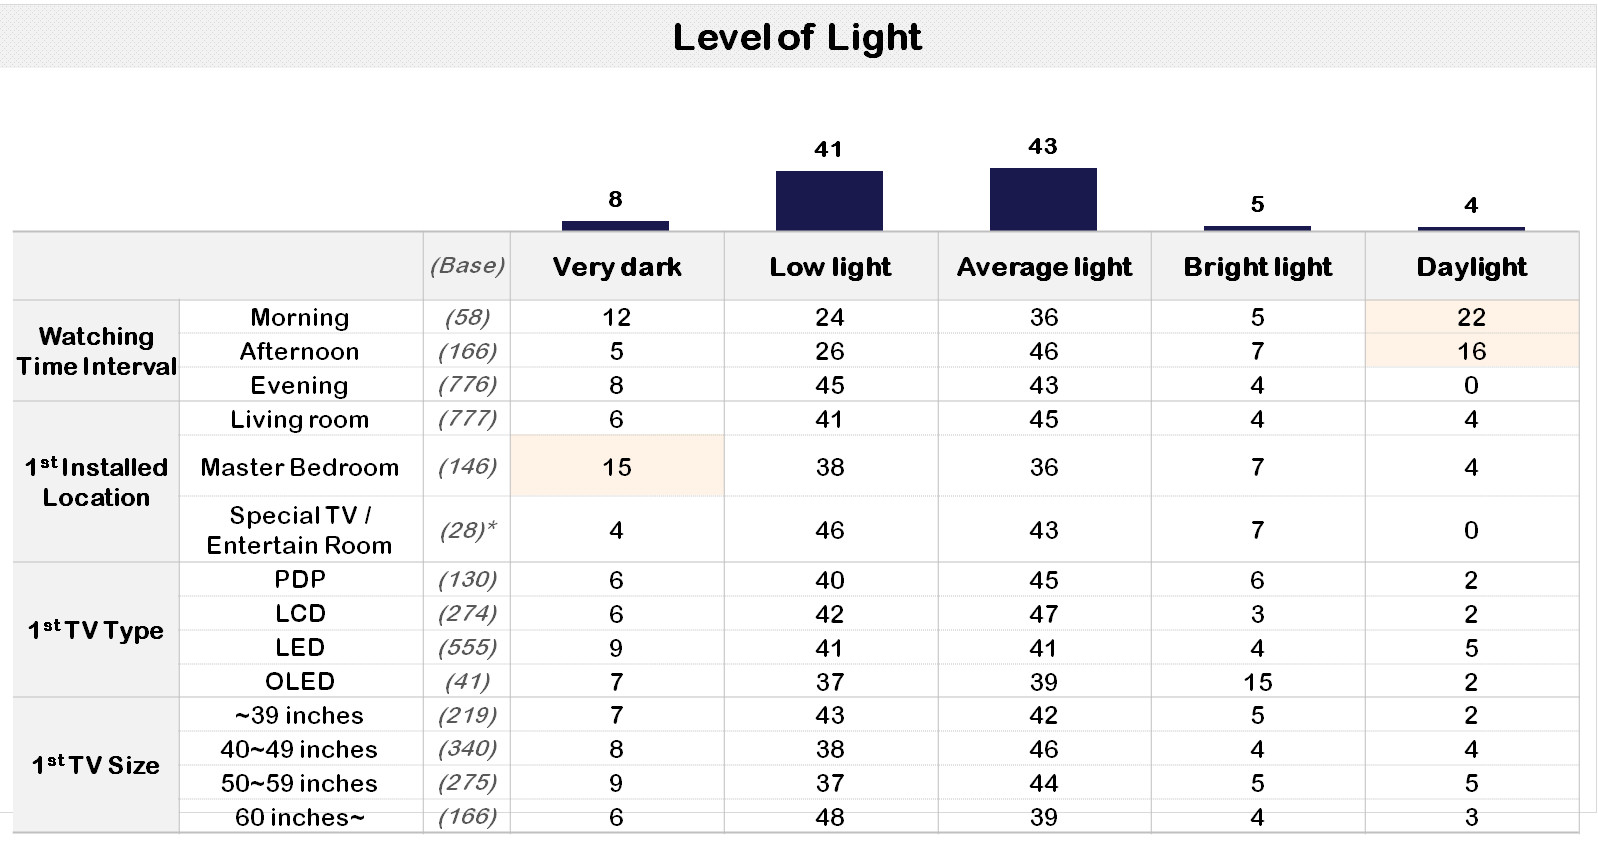 embrain TV light levels